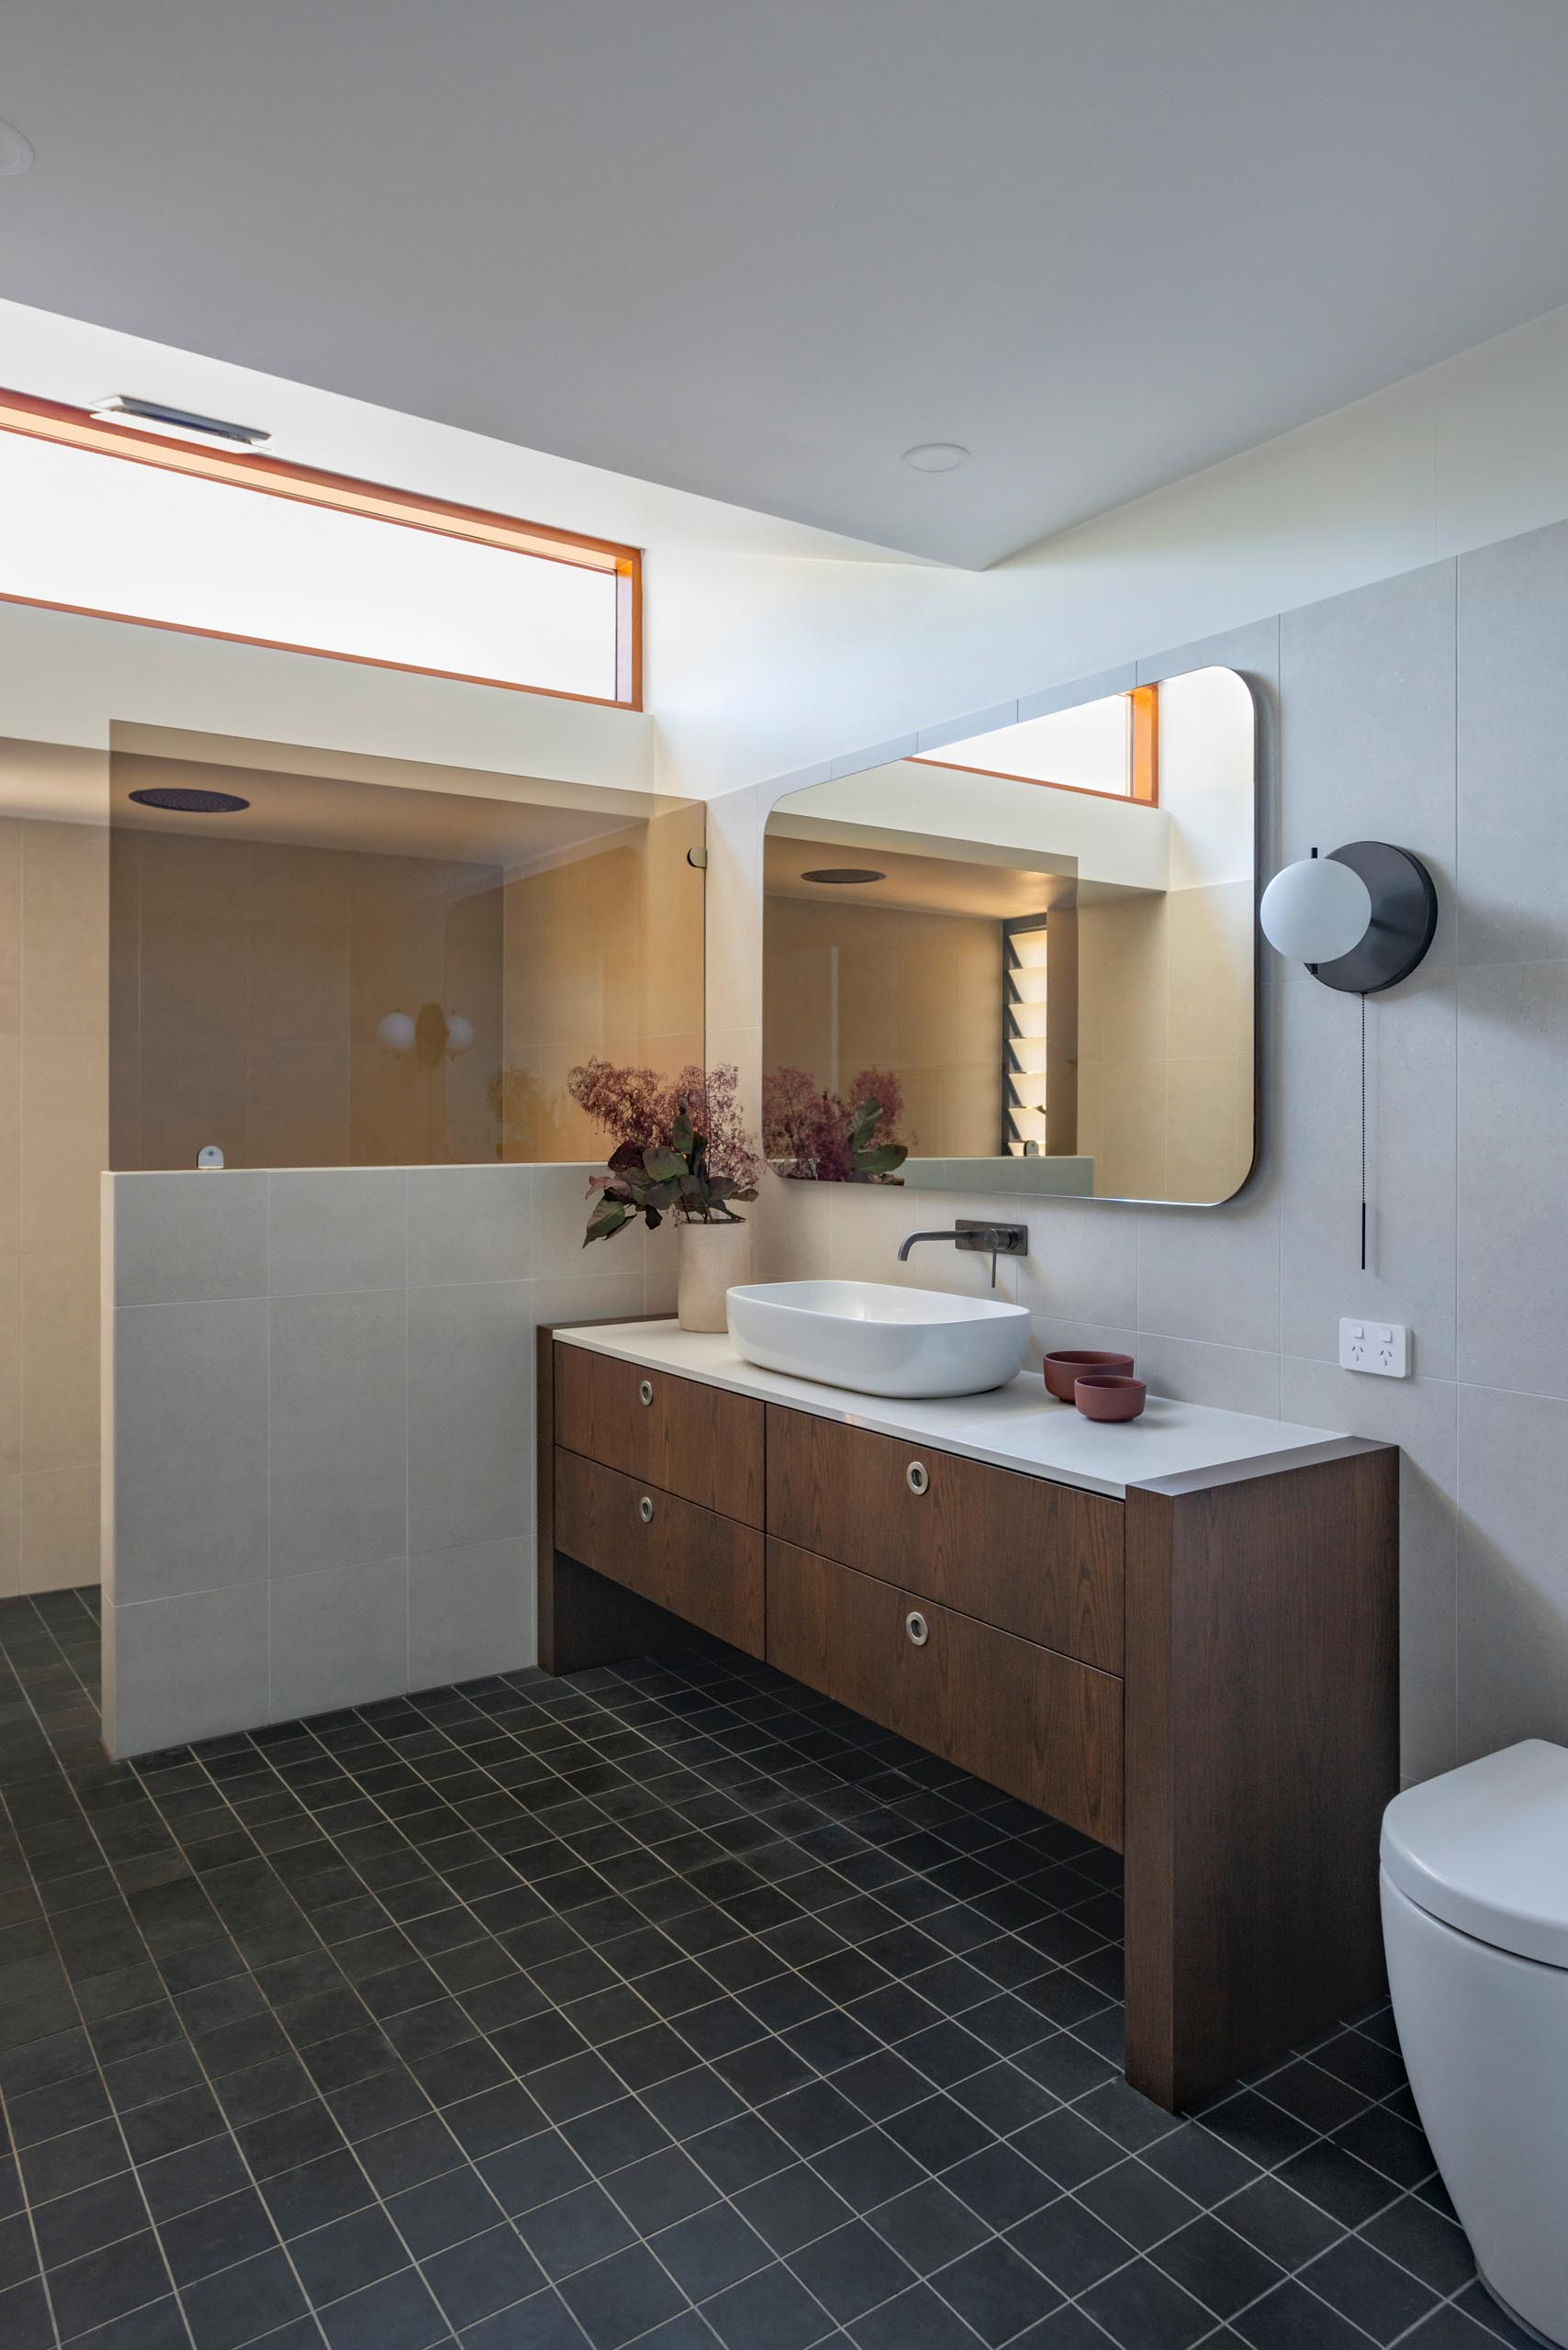 A modern bathroom with a dark wood vanity that's been paired with dark flooring and light colored walls.